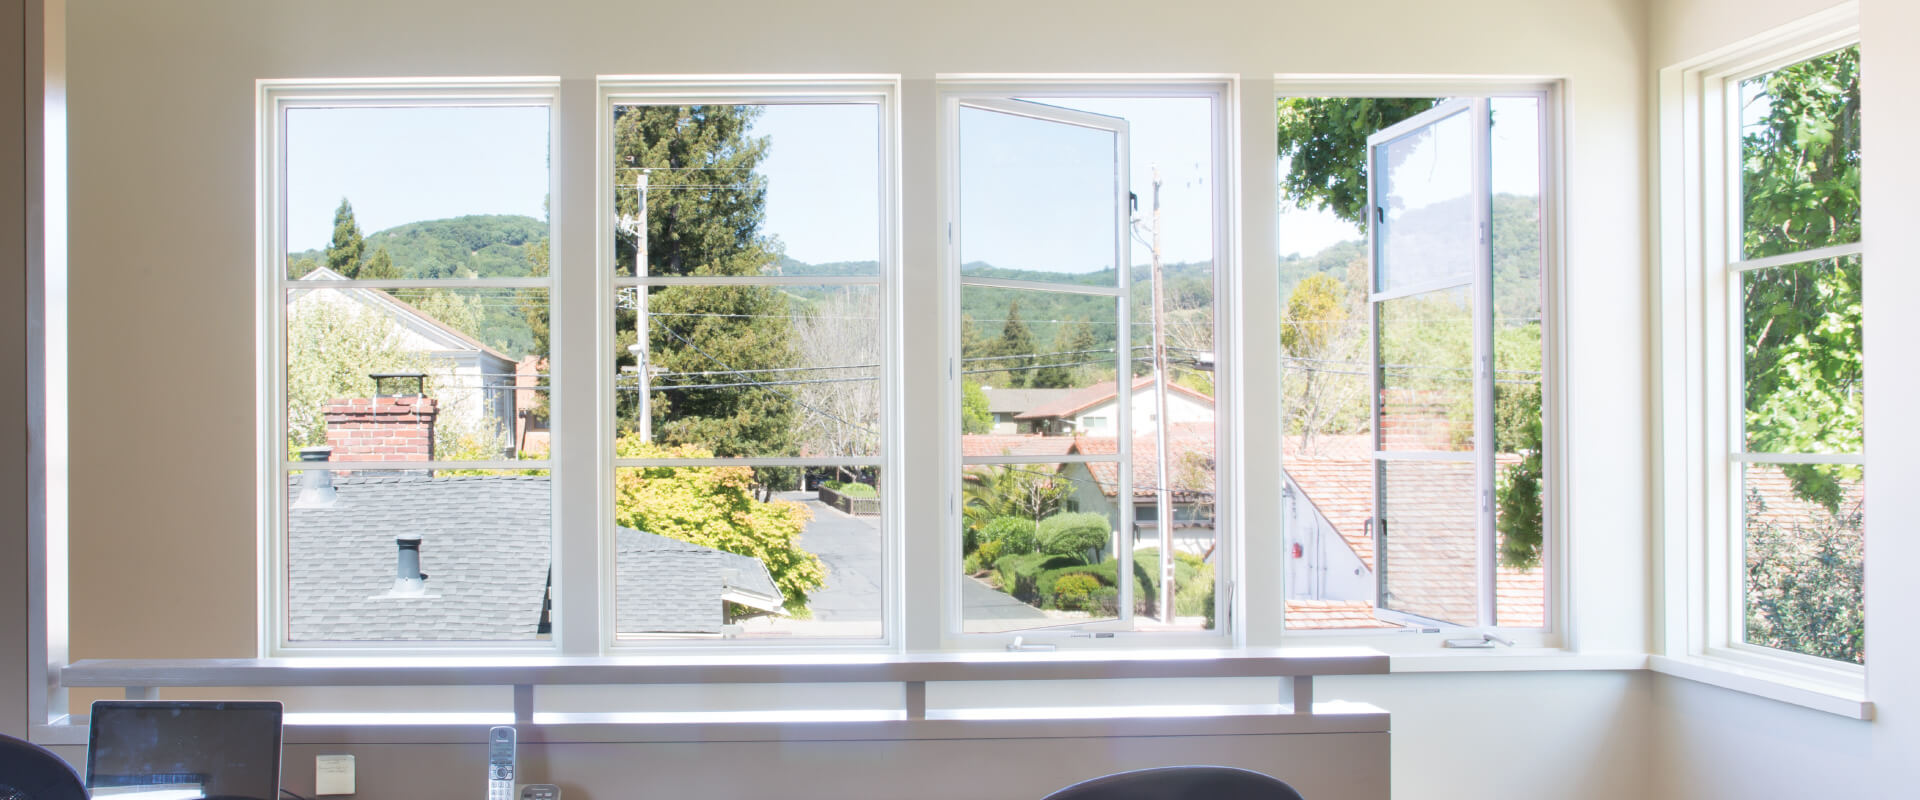 French casement windows photos houzz - Casement Windows